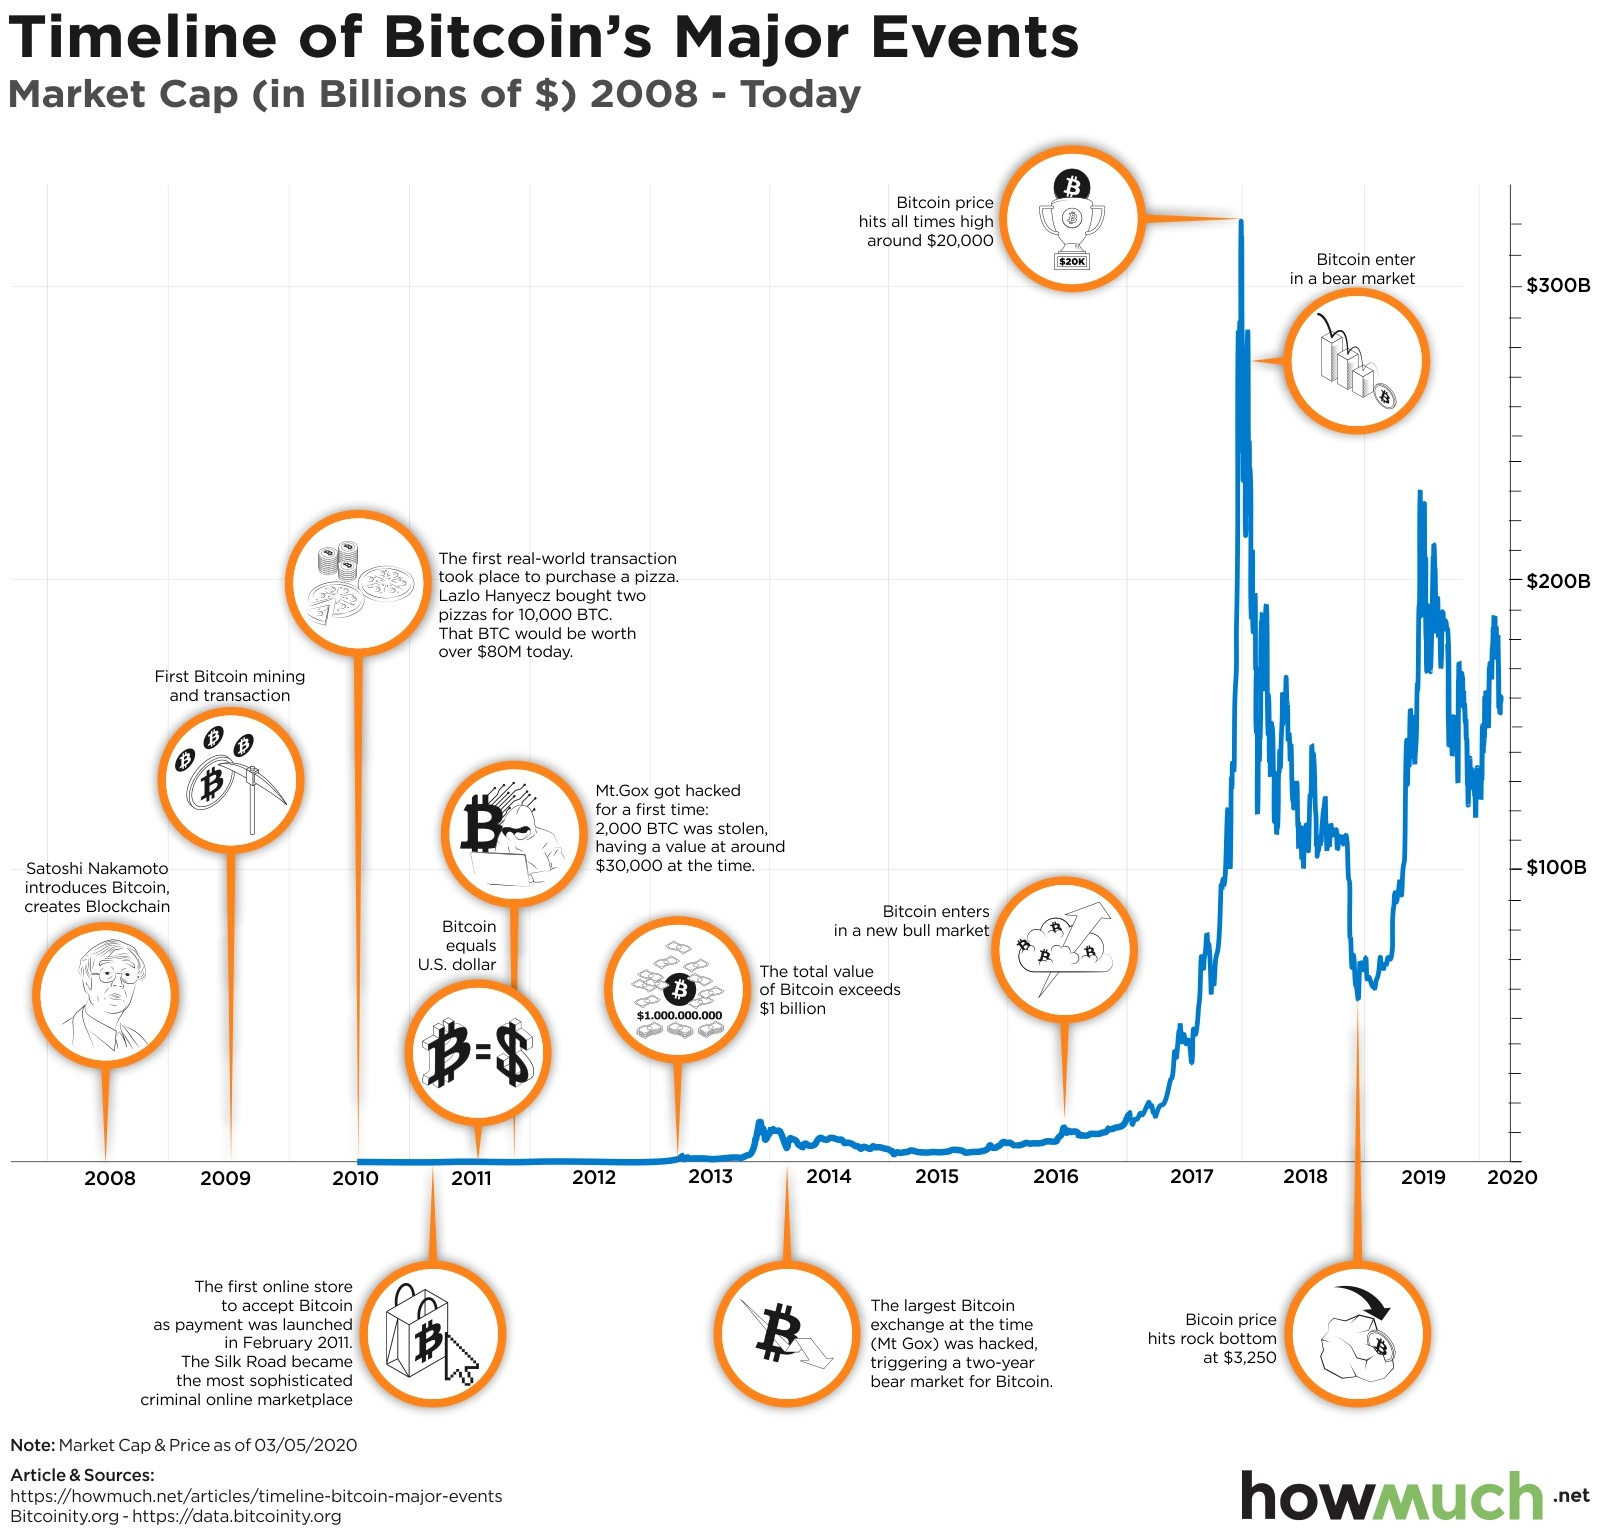 Timeline of Bitcoin major events